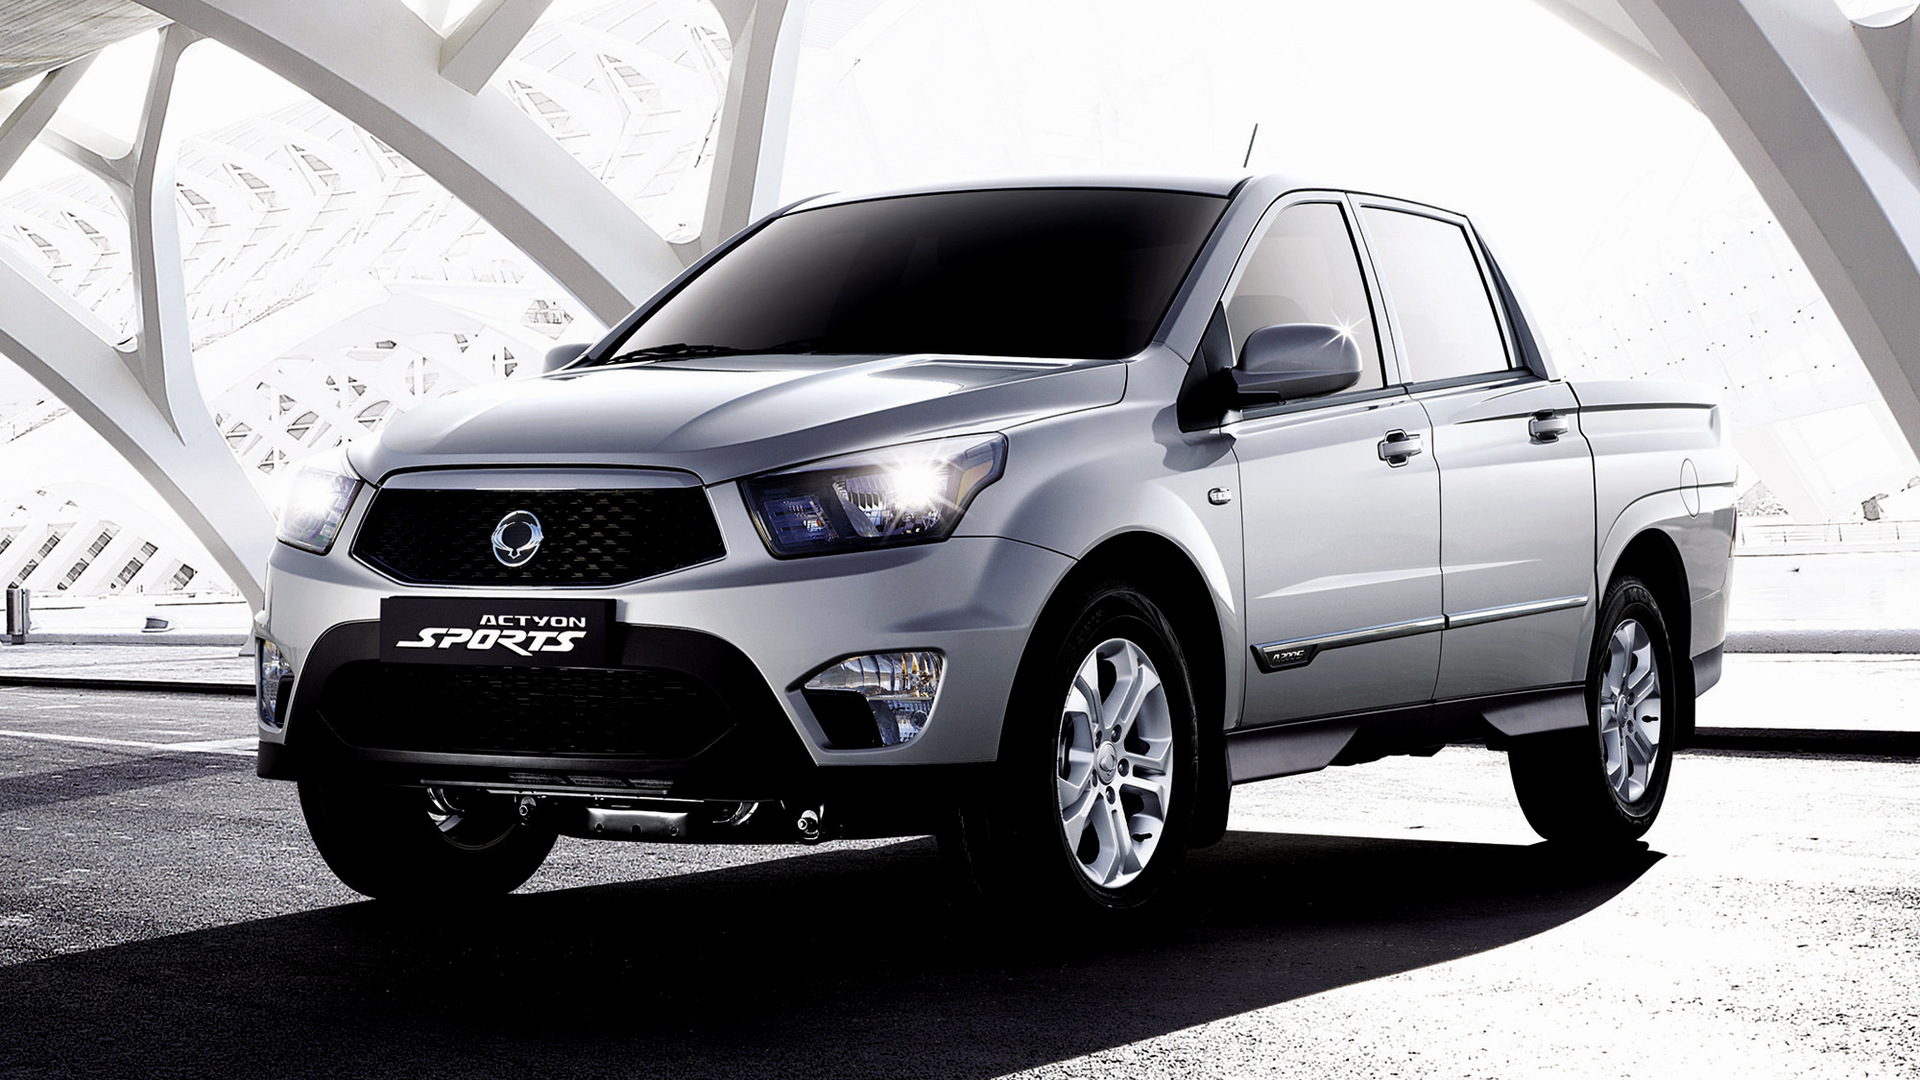 ssangyong actyon sports 2012 wallpapers and hd images. Black Bedroom Furniture Sets. Home Design Ideas